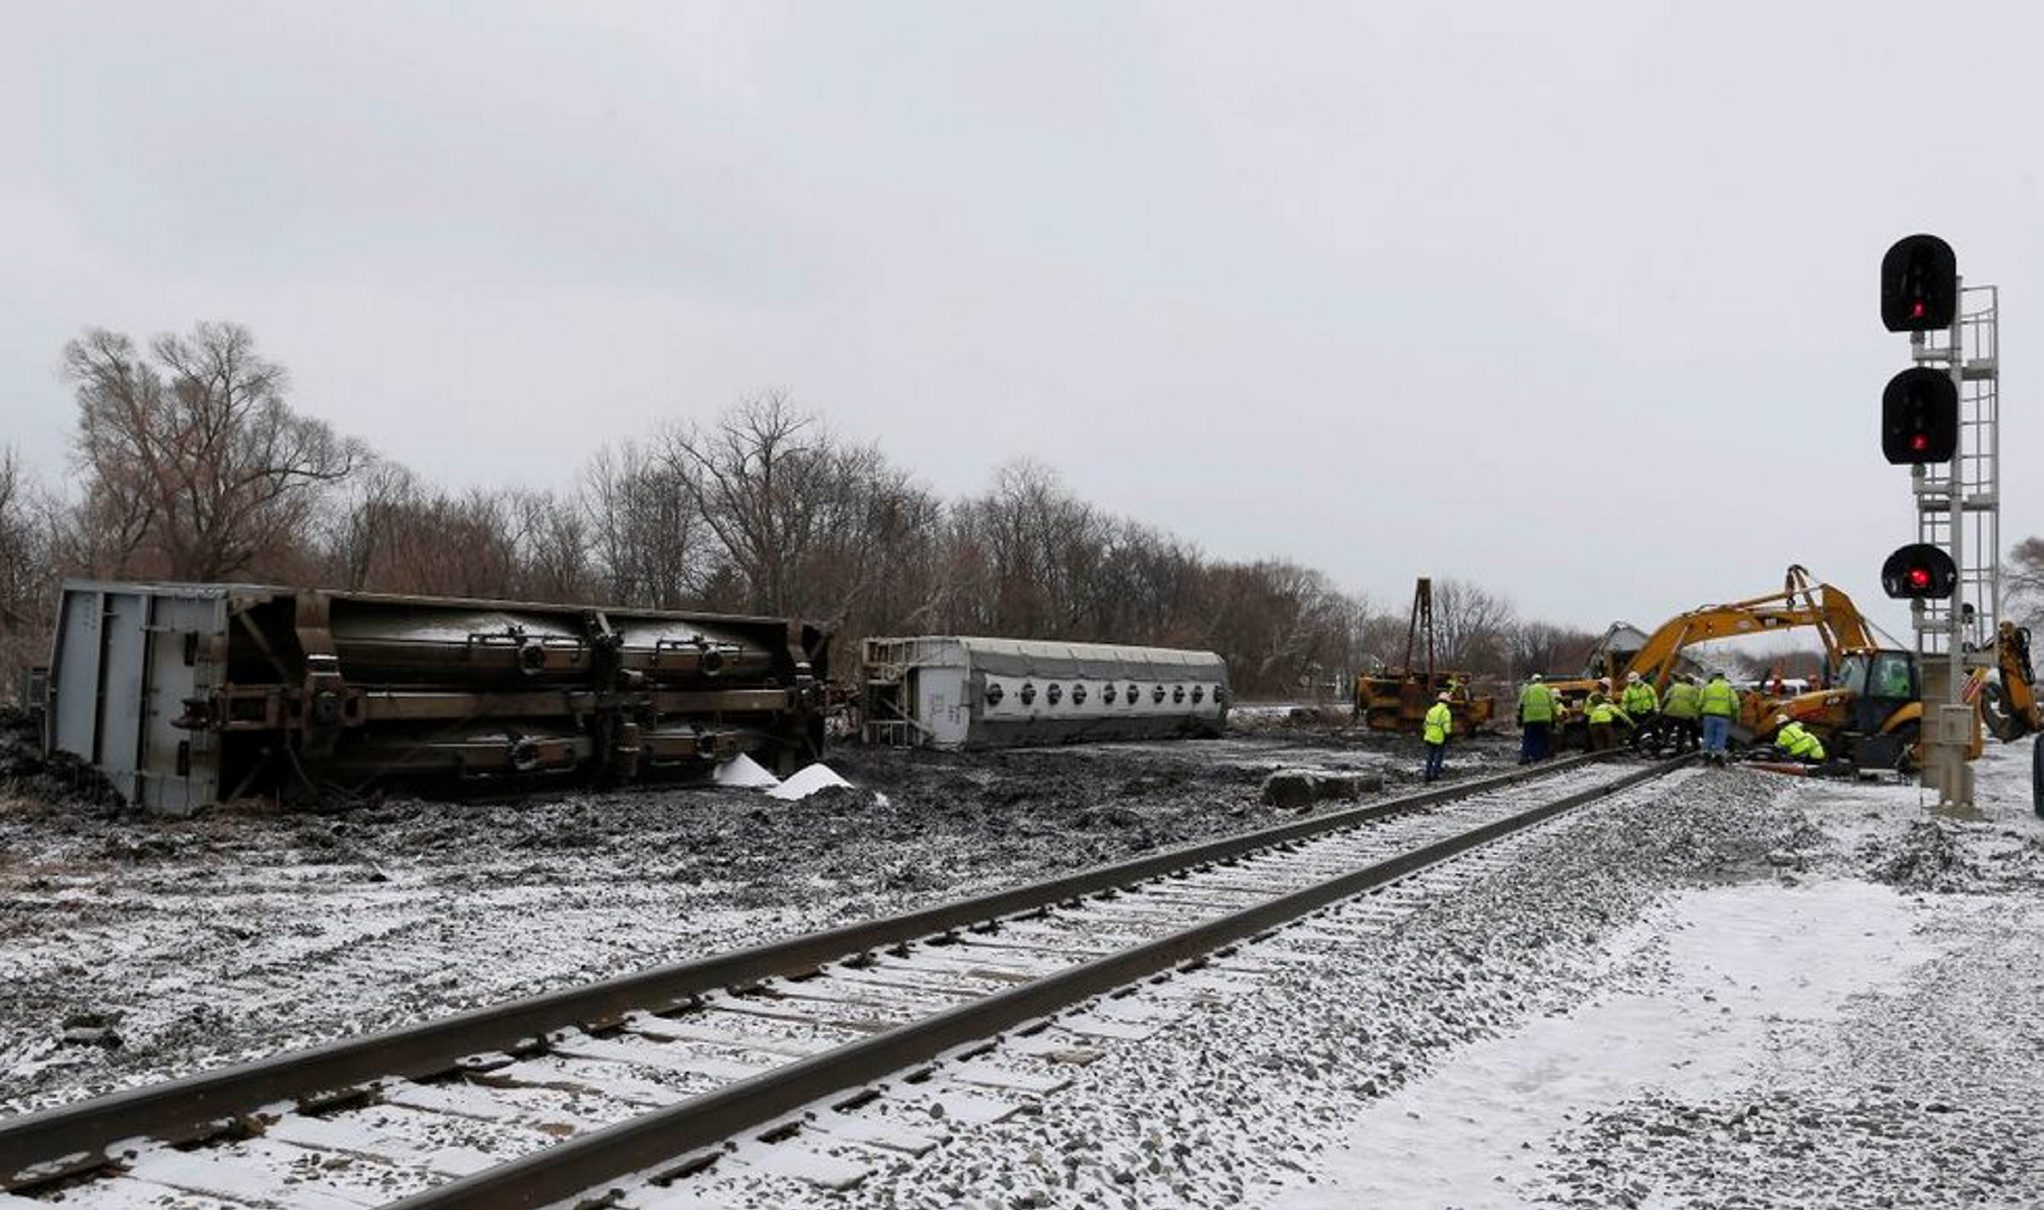 Crews work on the train derailment in Ripley Wednesday, March 2, 2016. (Mark Mulville/Buffalo News)